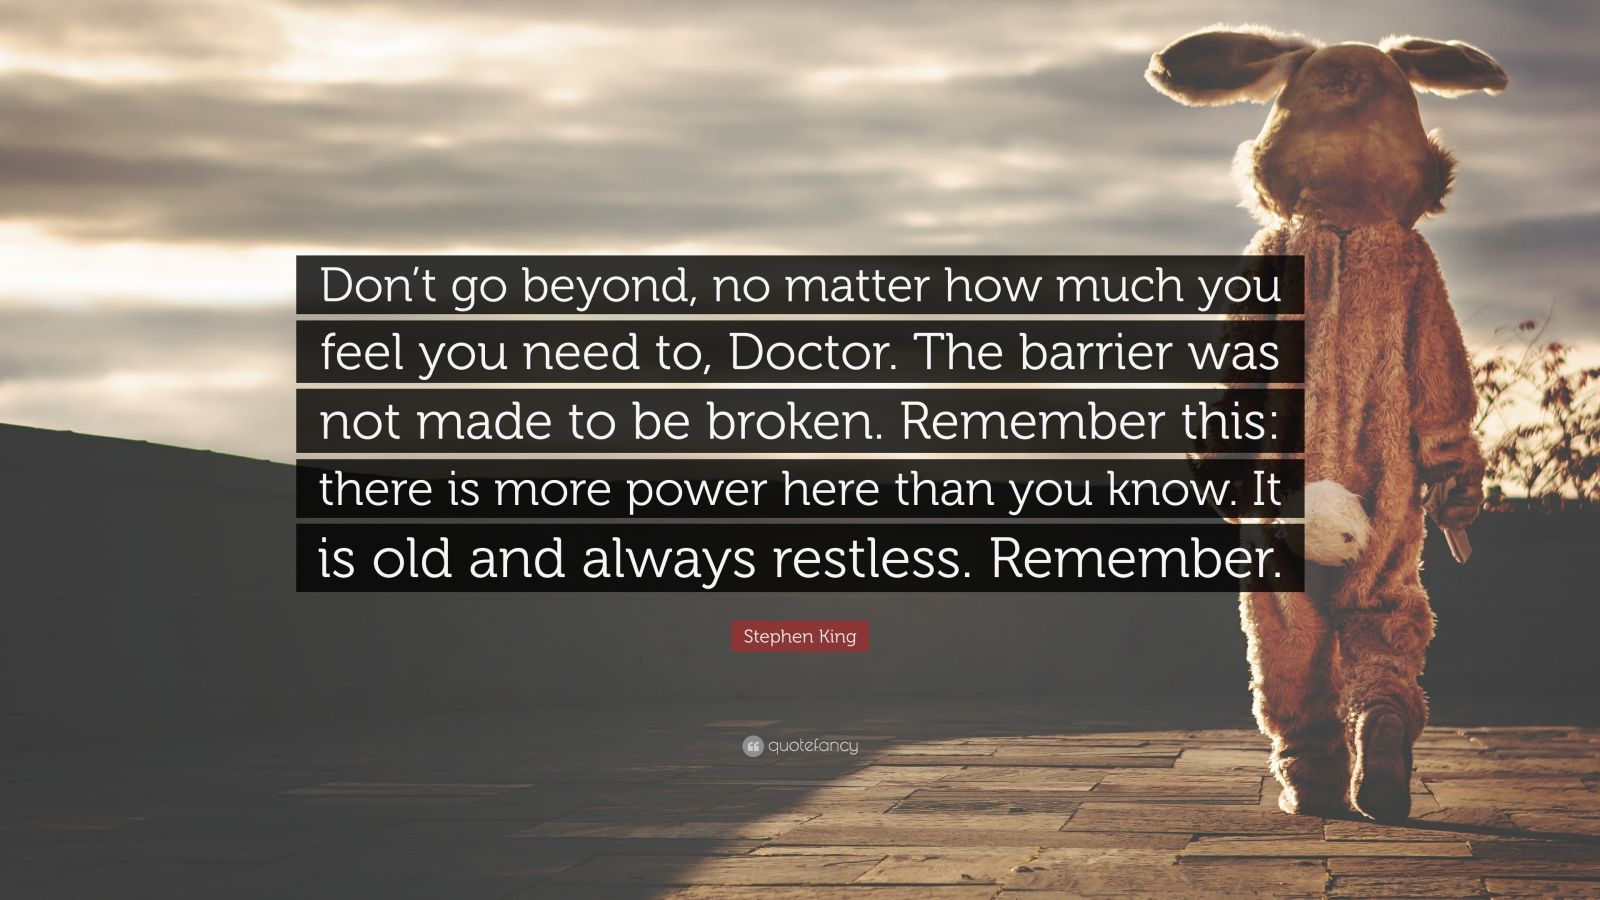 """Stephen King Quote: """"Don't go beyond, no matter how much you feel you need to, Doctor. The barrier was not made to be broken. Remember this: there is more power here than you know. It is old and always restless. Remember."""""""